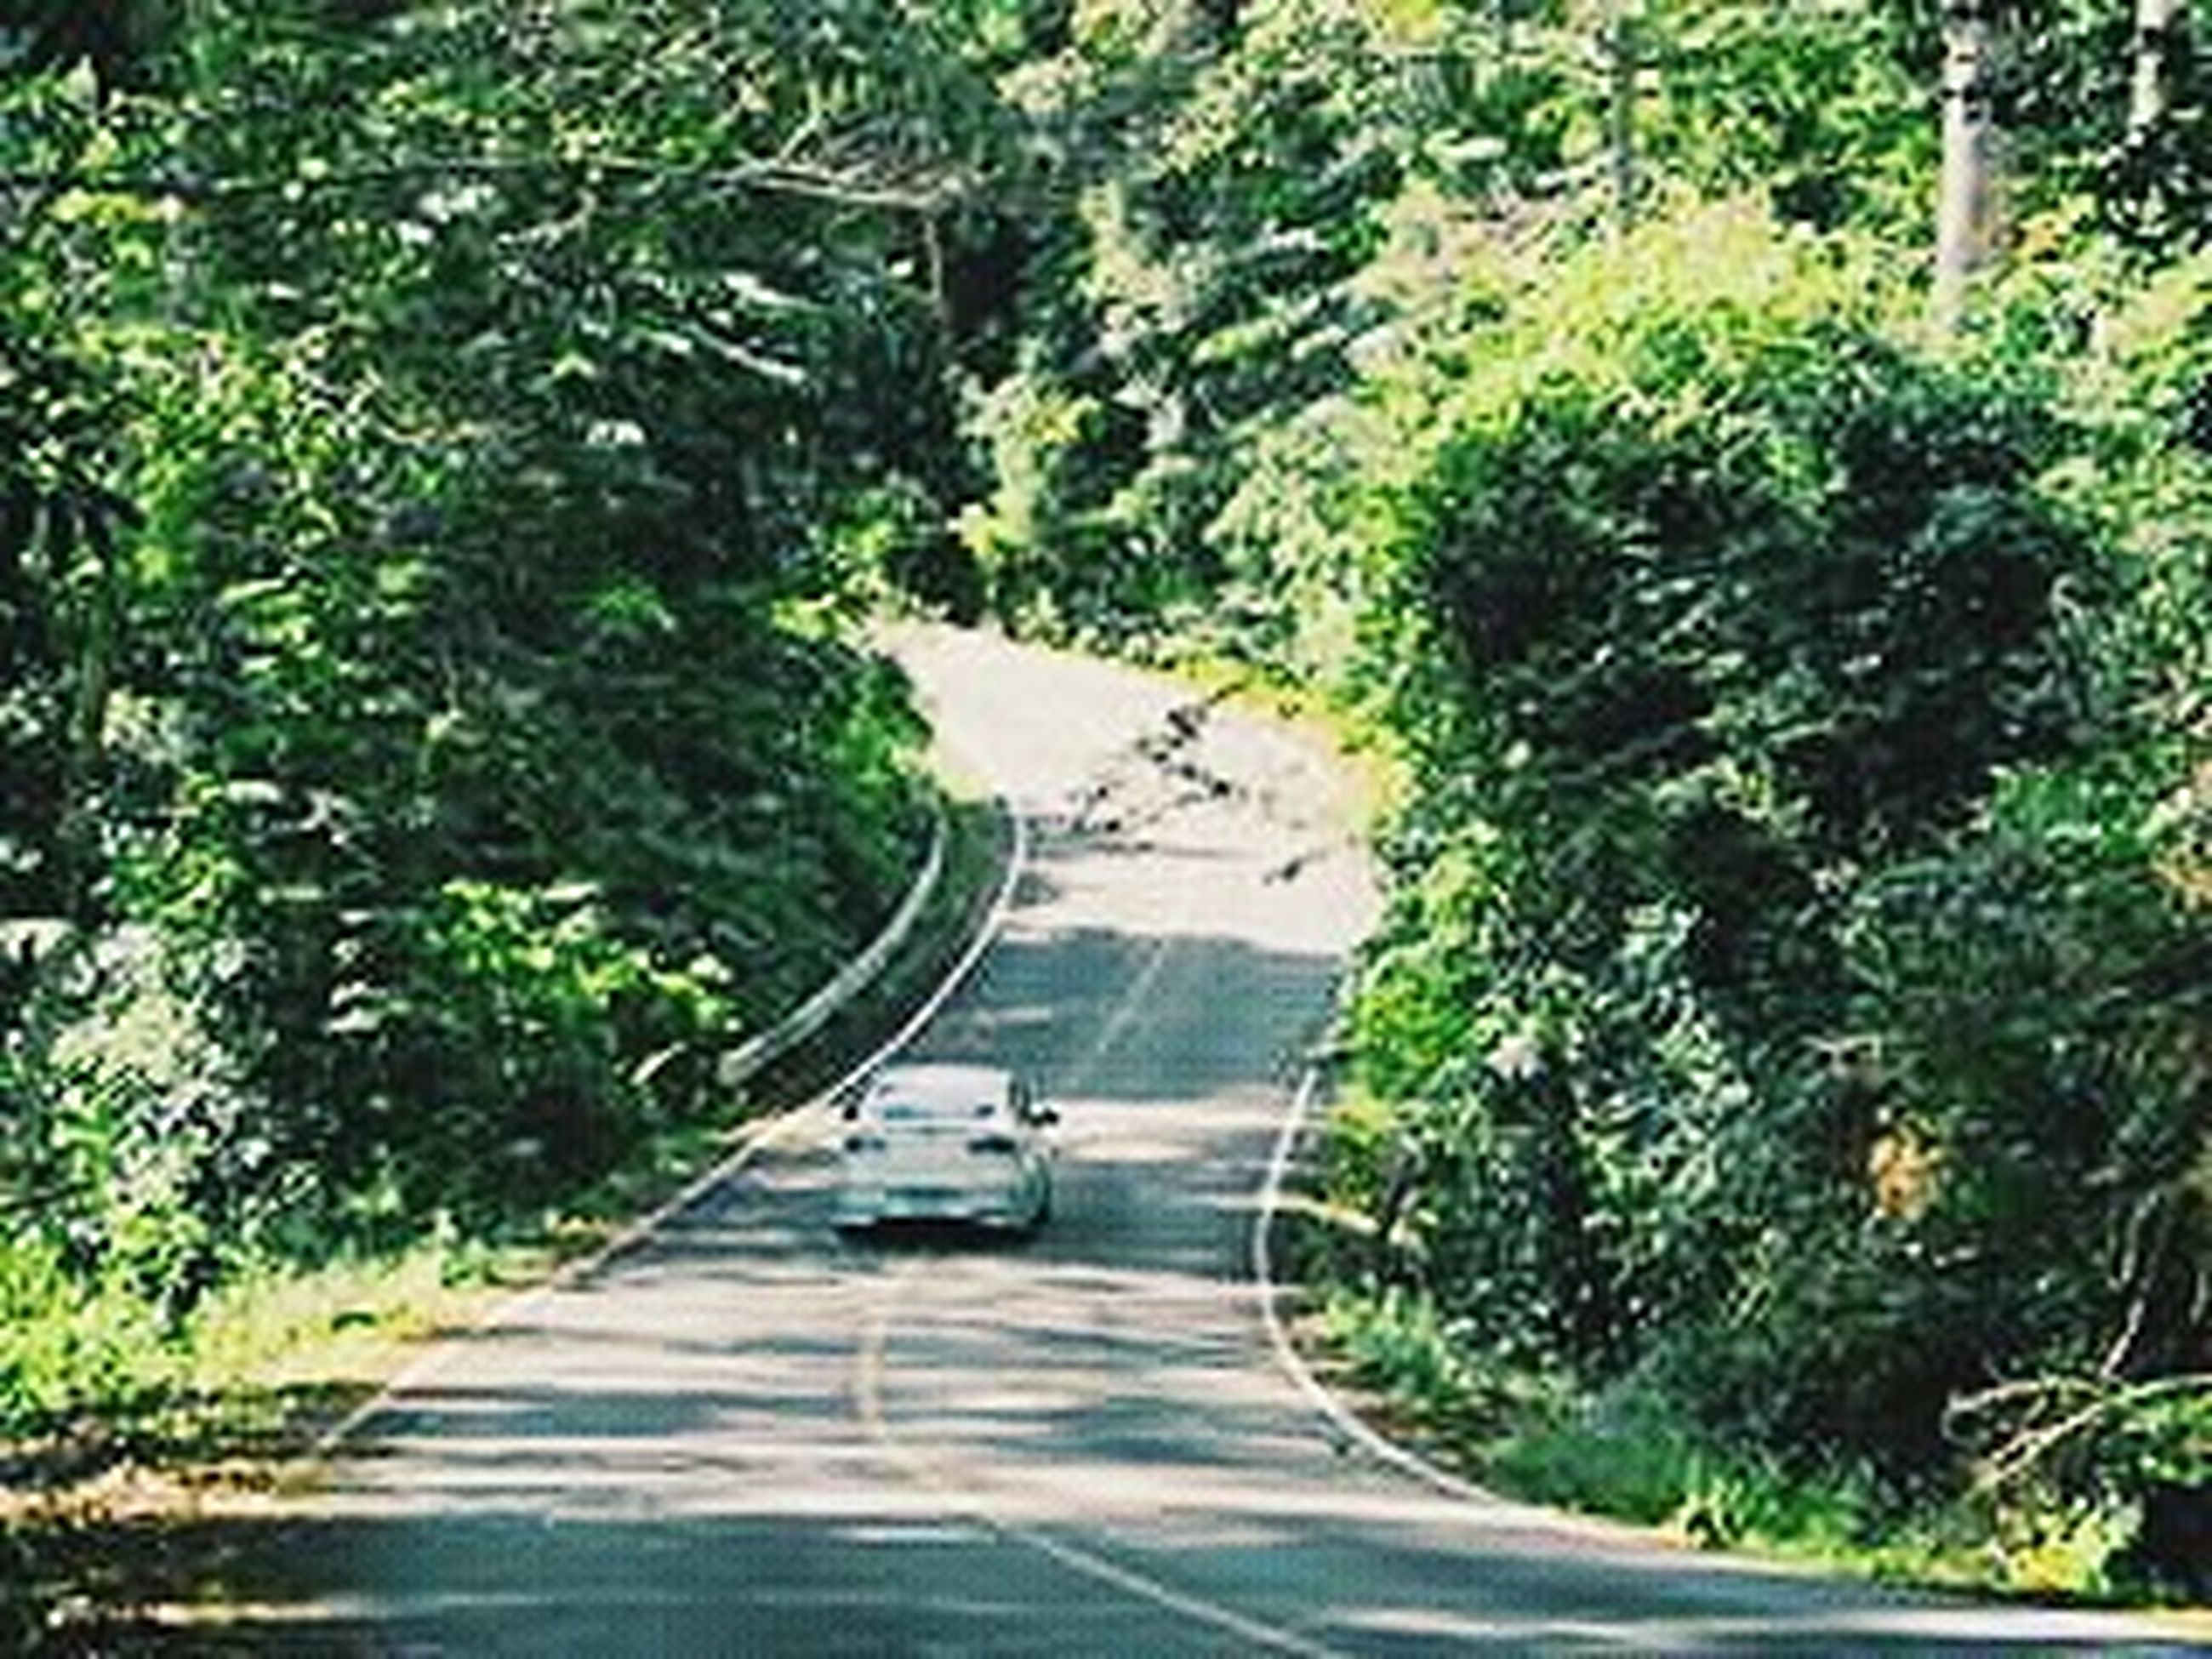 transportation, tree, the way forward, road, mode of transport, green color, car, land vehicle, growth, high angle view, diminishing perspective, street, vanishing point, on the move, lush foliage, road marking, plant, nature, day, no people